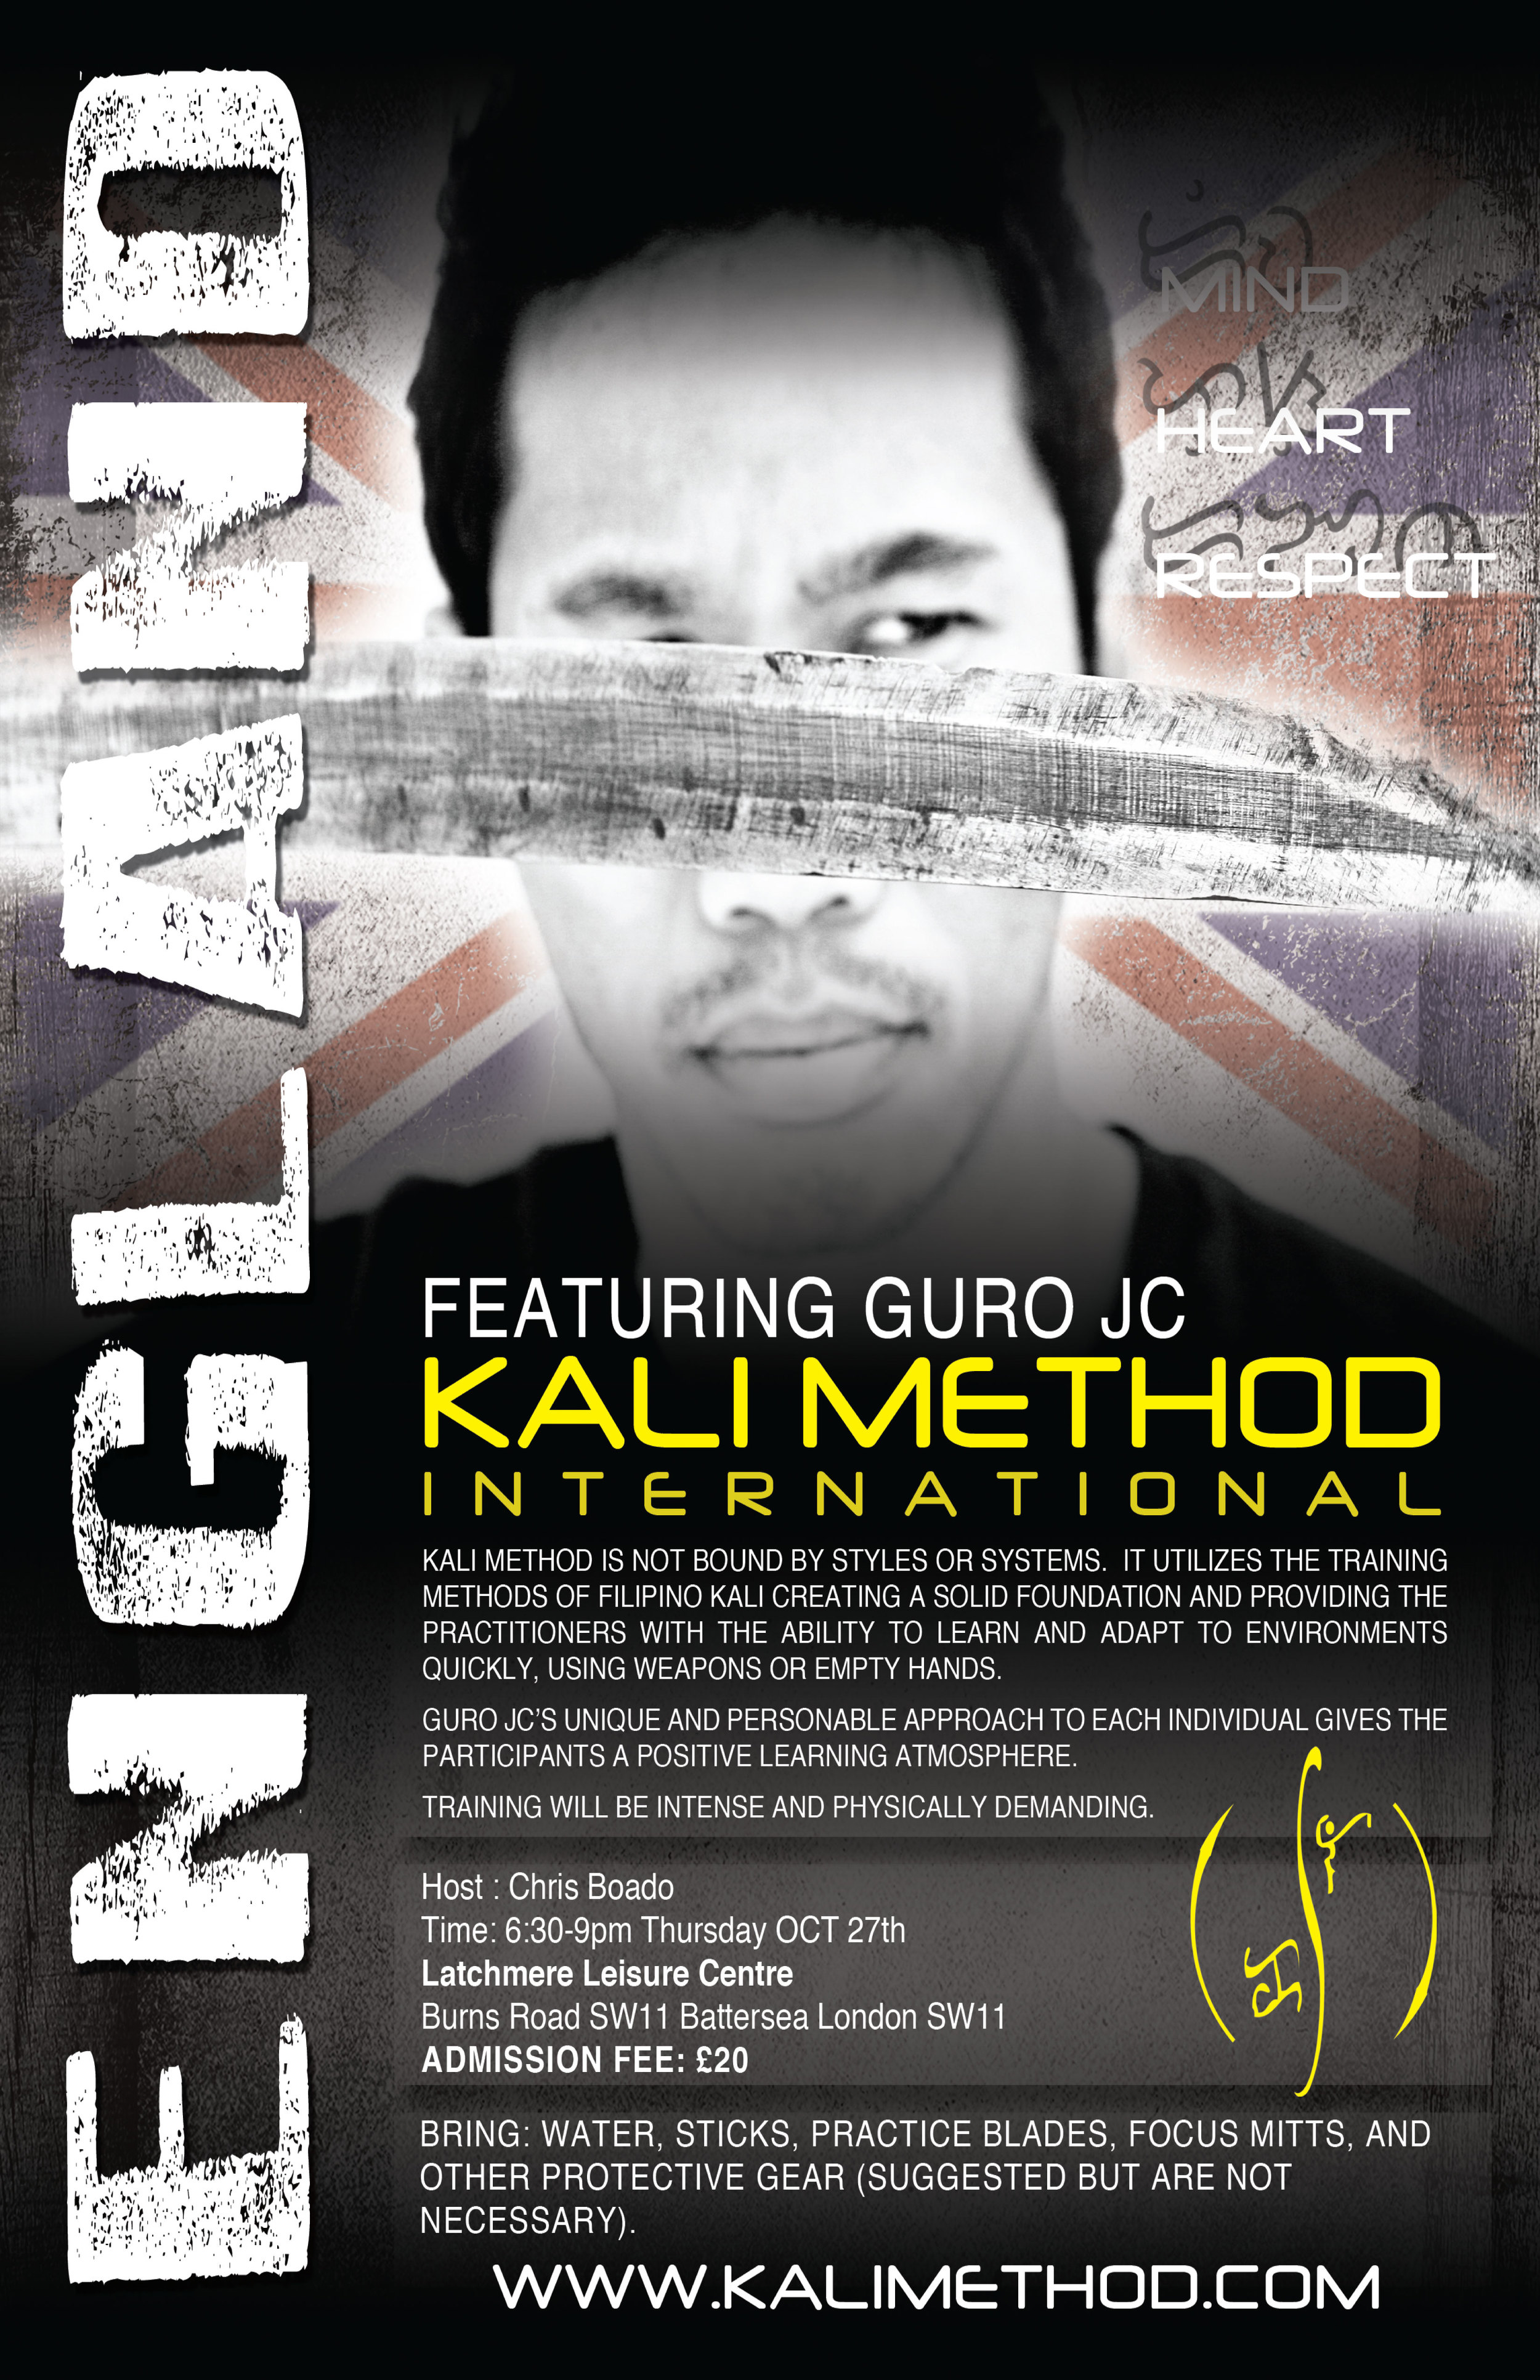 KaliMethodEnglandFlyer 11x17.jpg